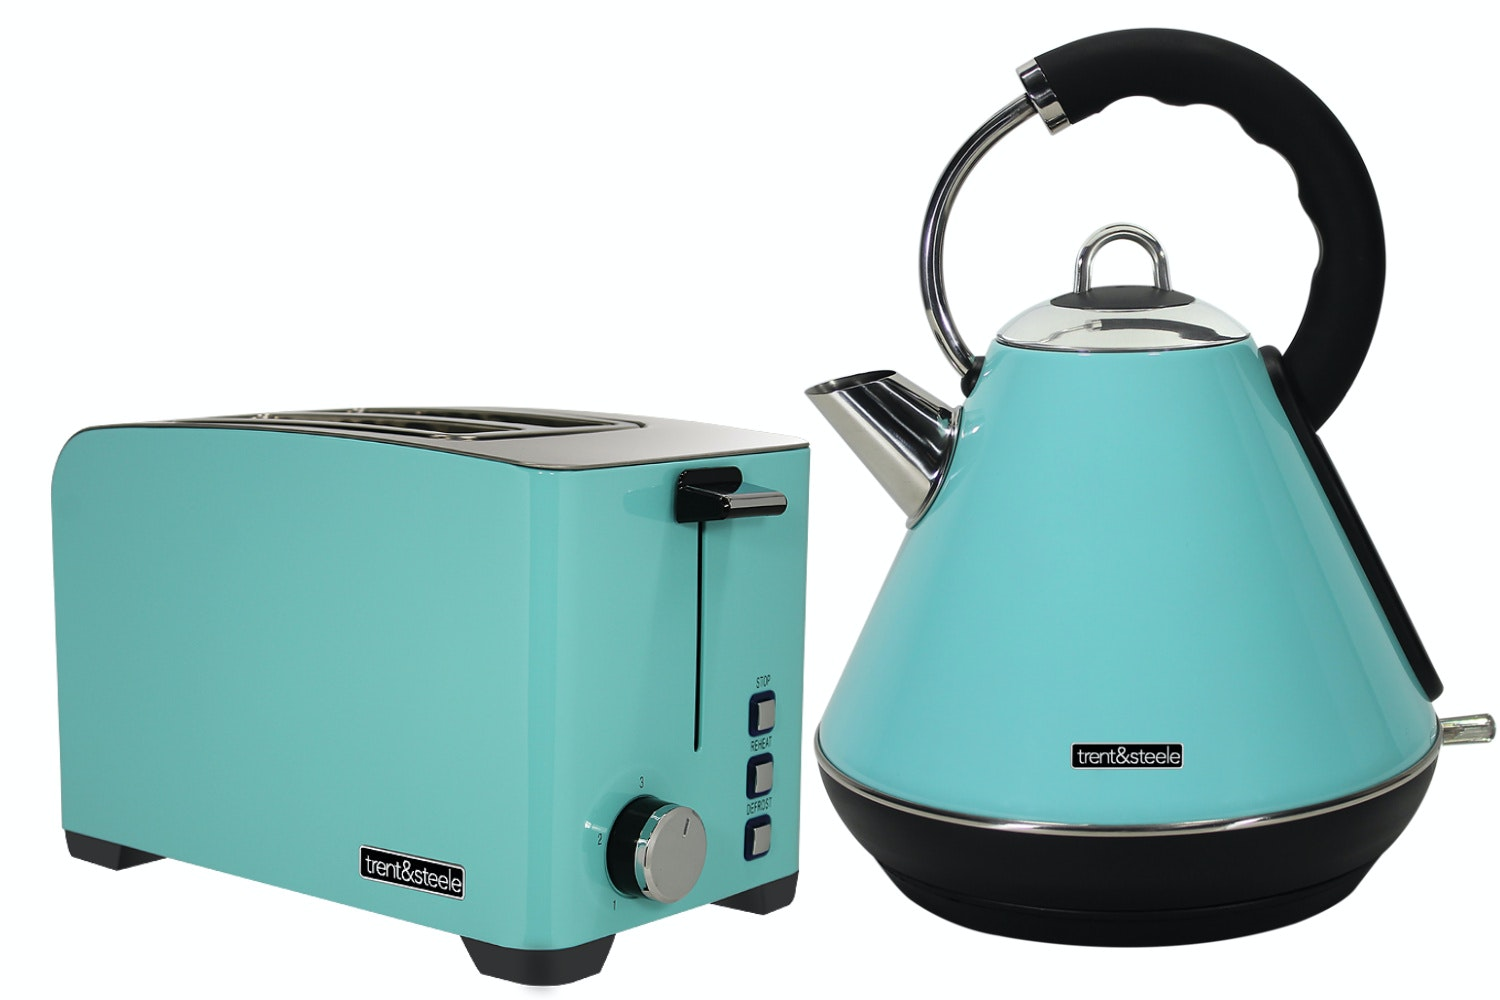 Trent and Steele Kettle Blender and Toaster Bundle